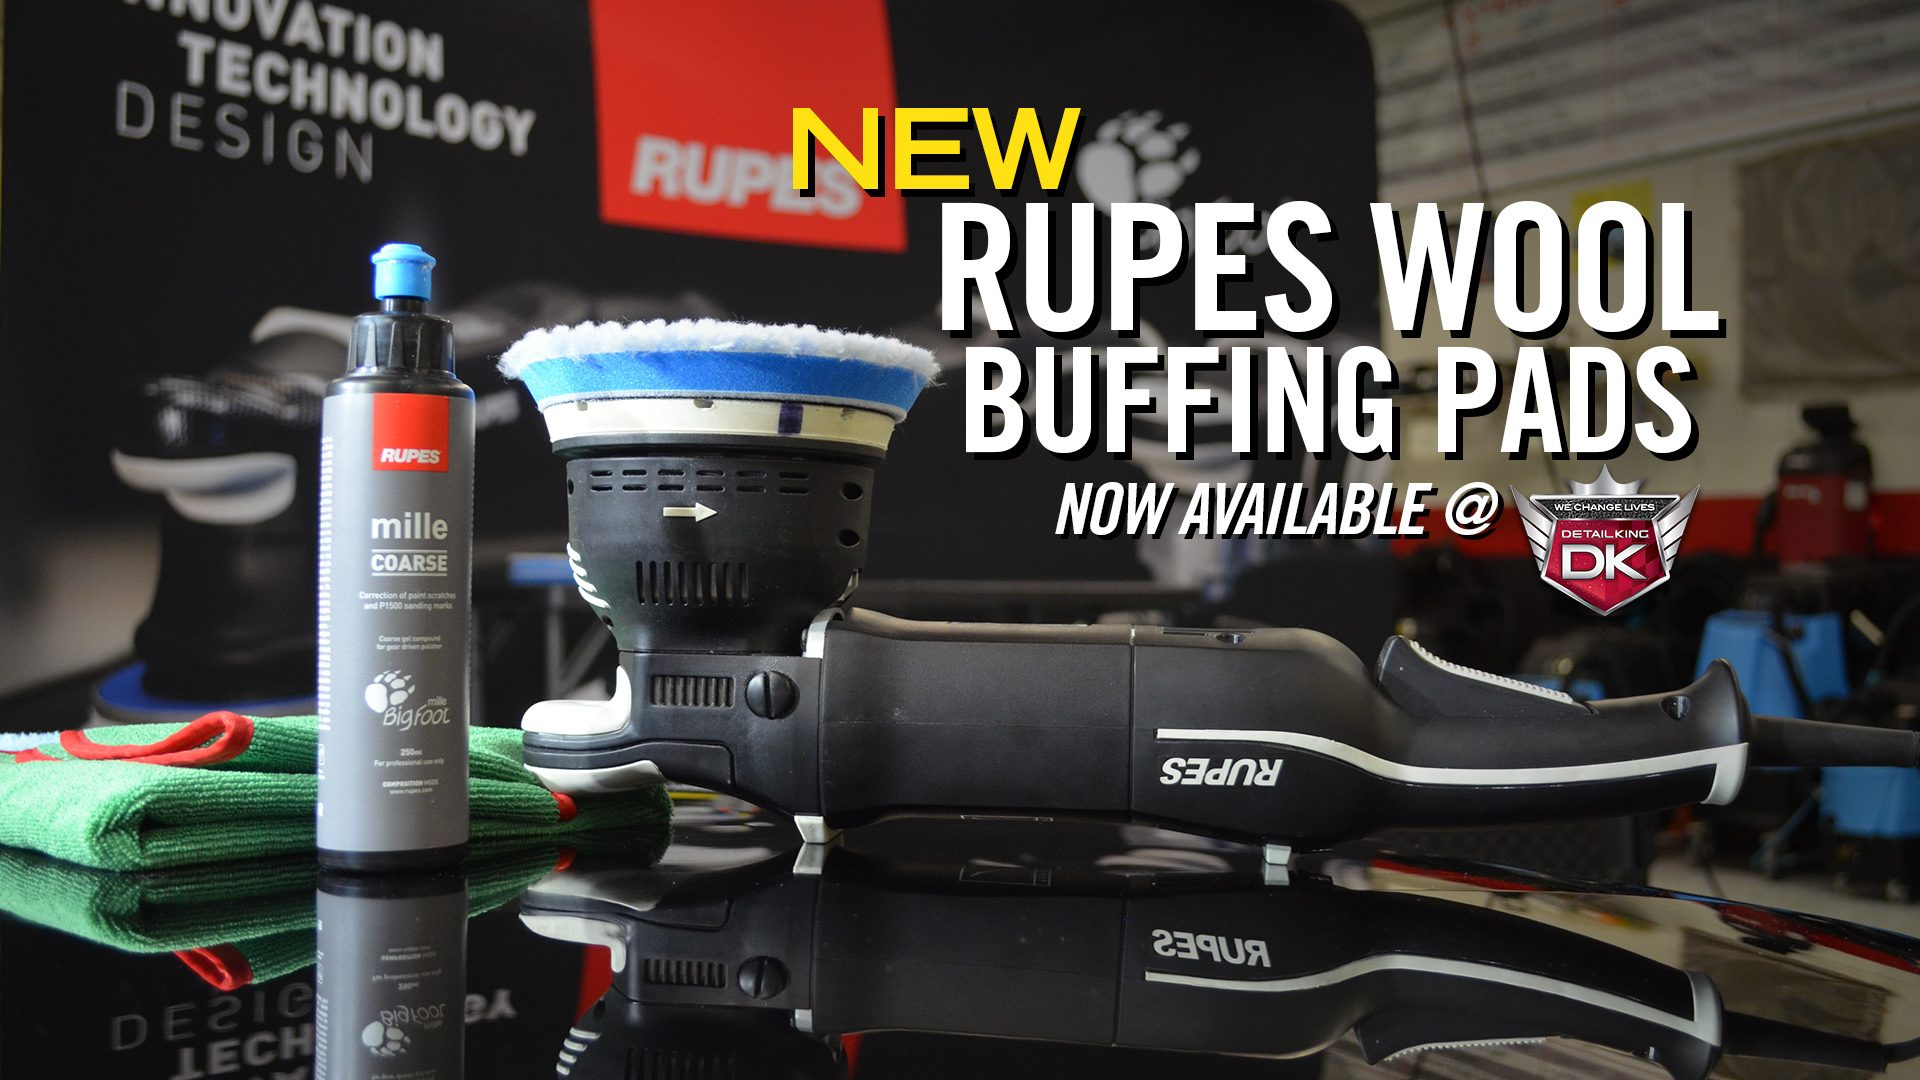 NEW Rupes Wool Buffing Pads